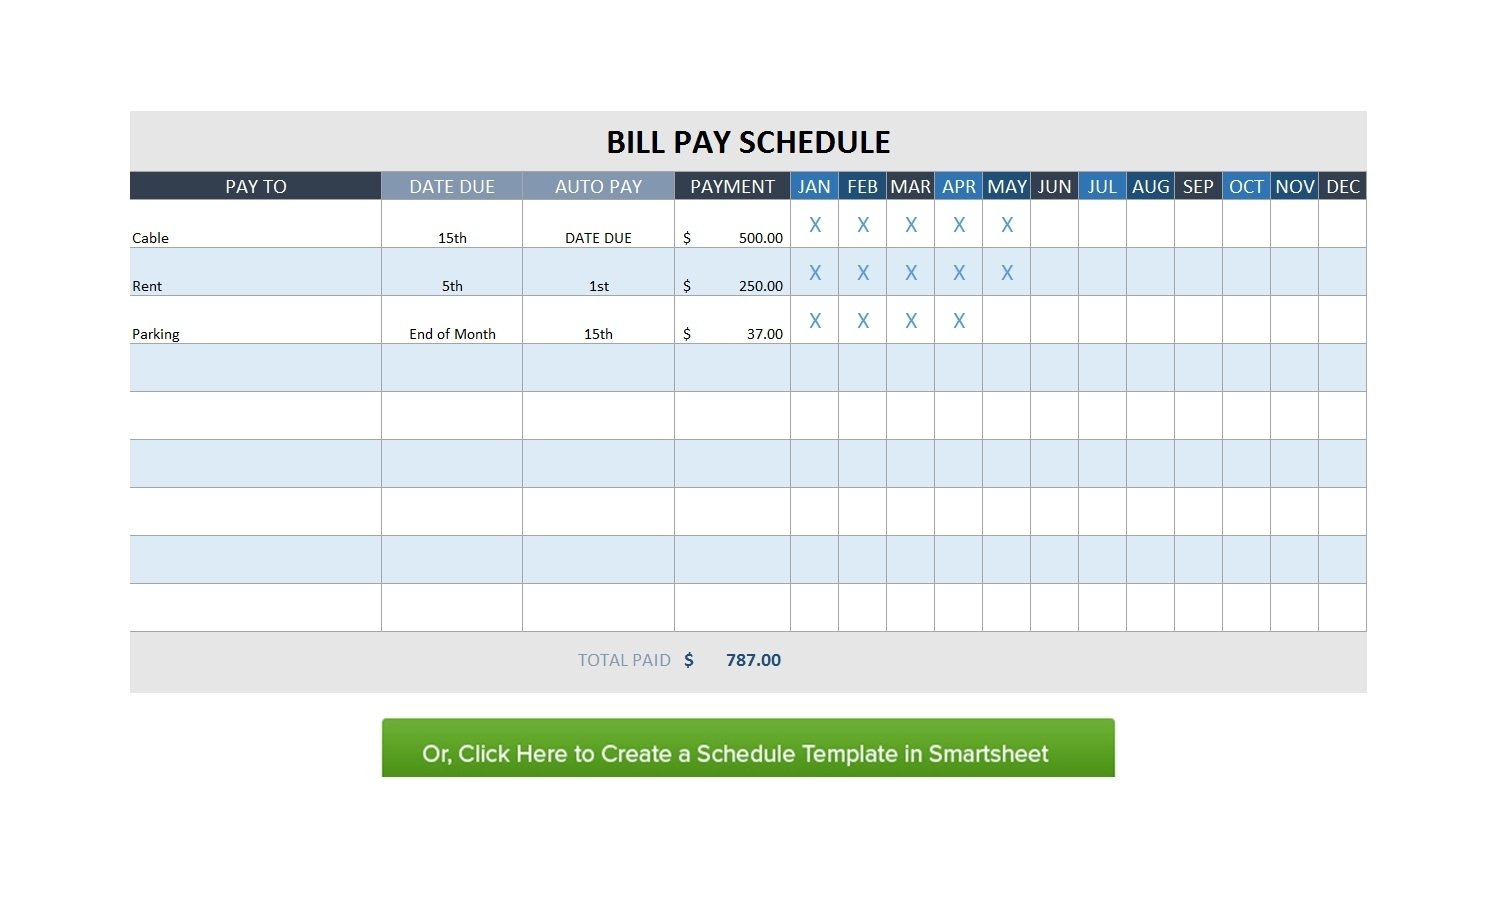 32 Free Bill Pay Checklists & Bill Calendars (Pdf, Word & Excel) throughout Free Monthly Bill Payment Checklist Editable